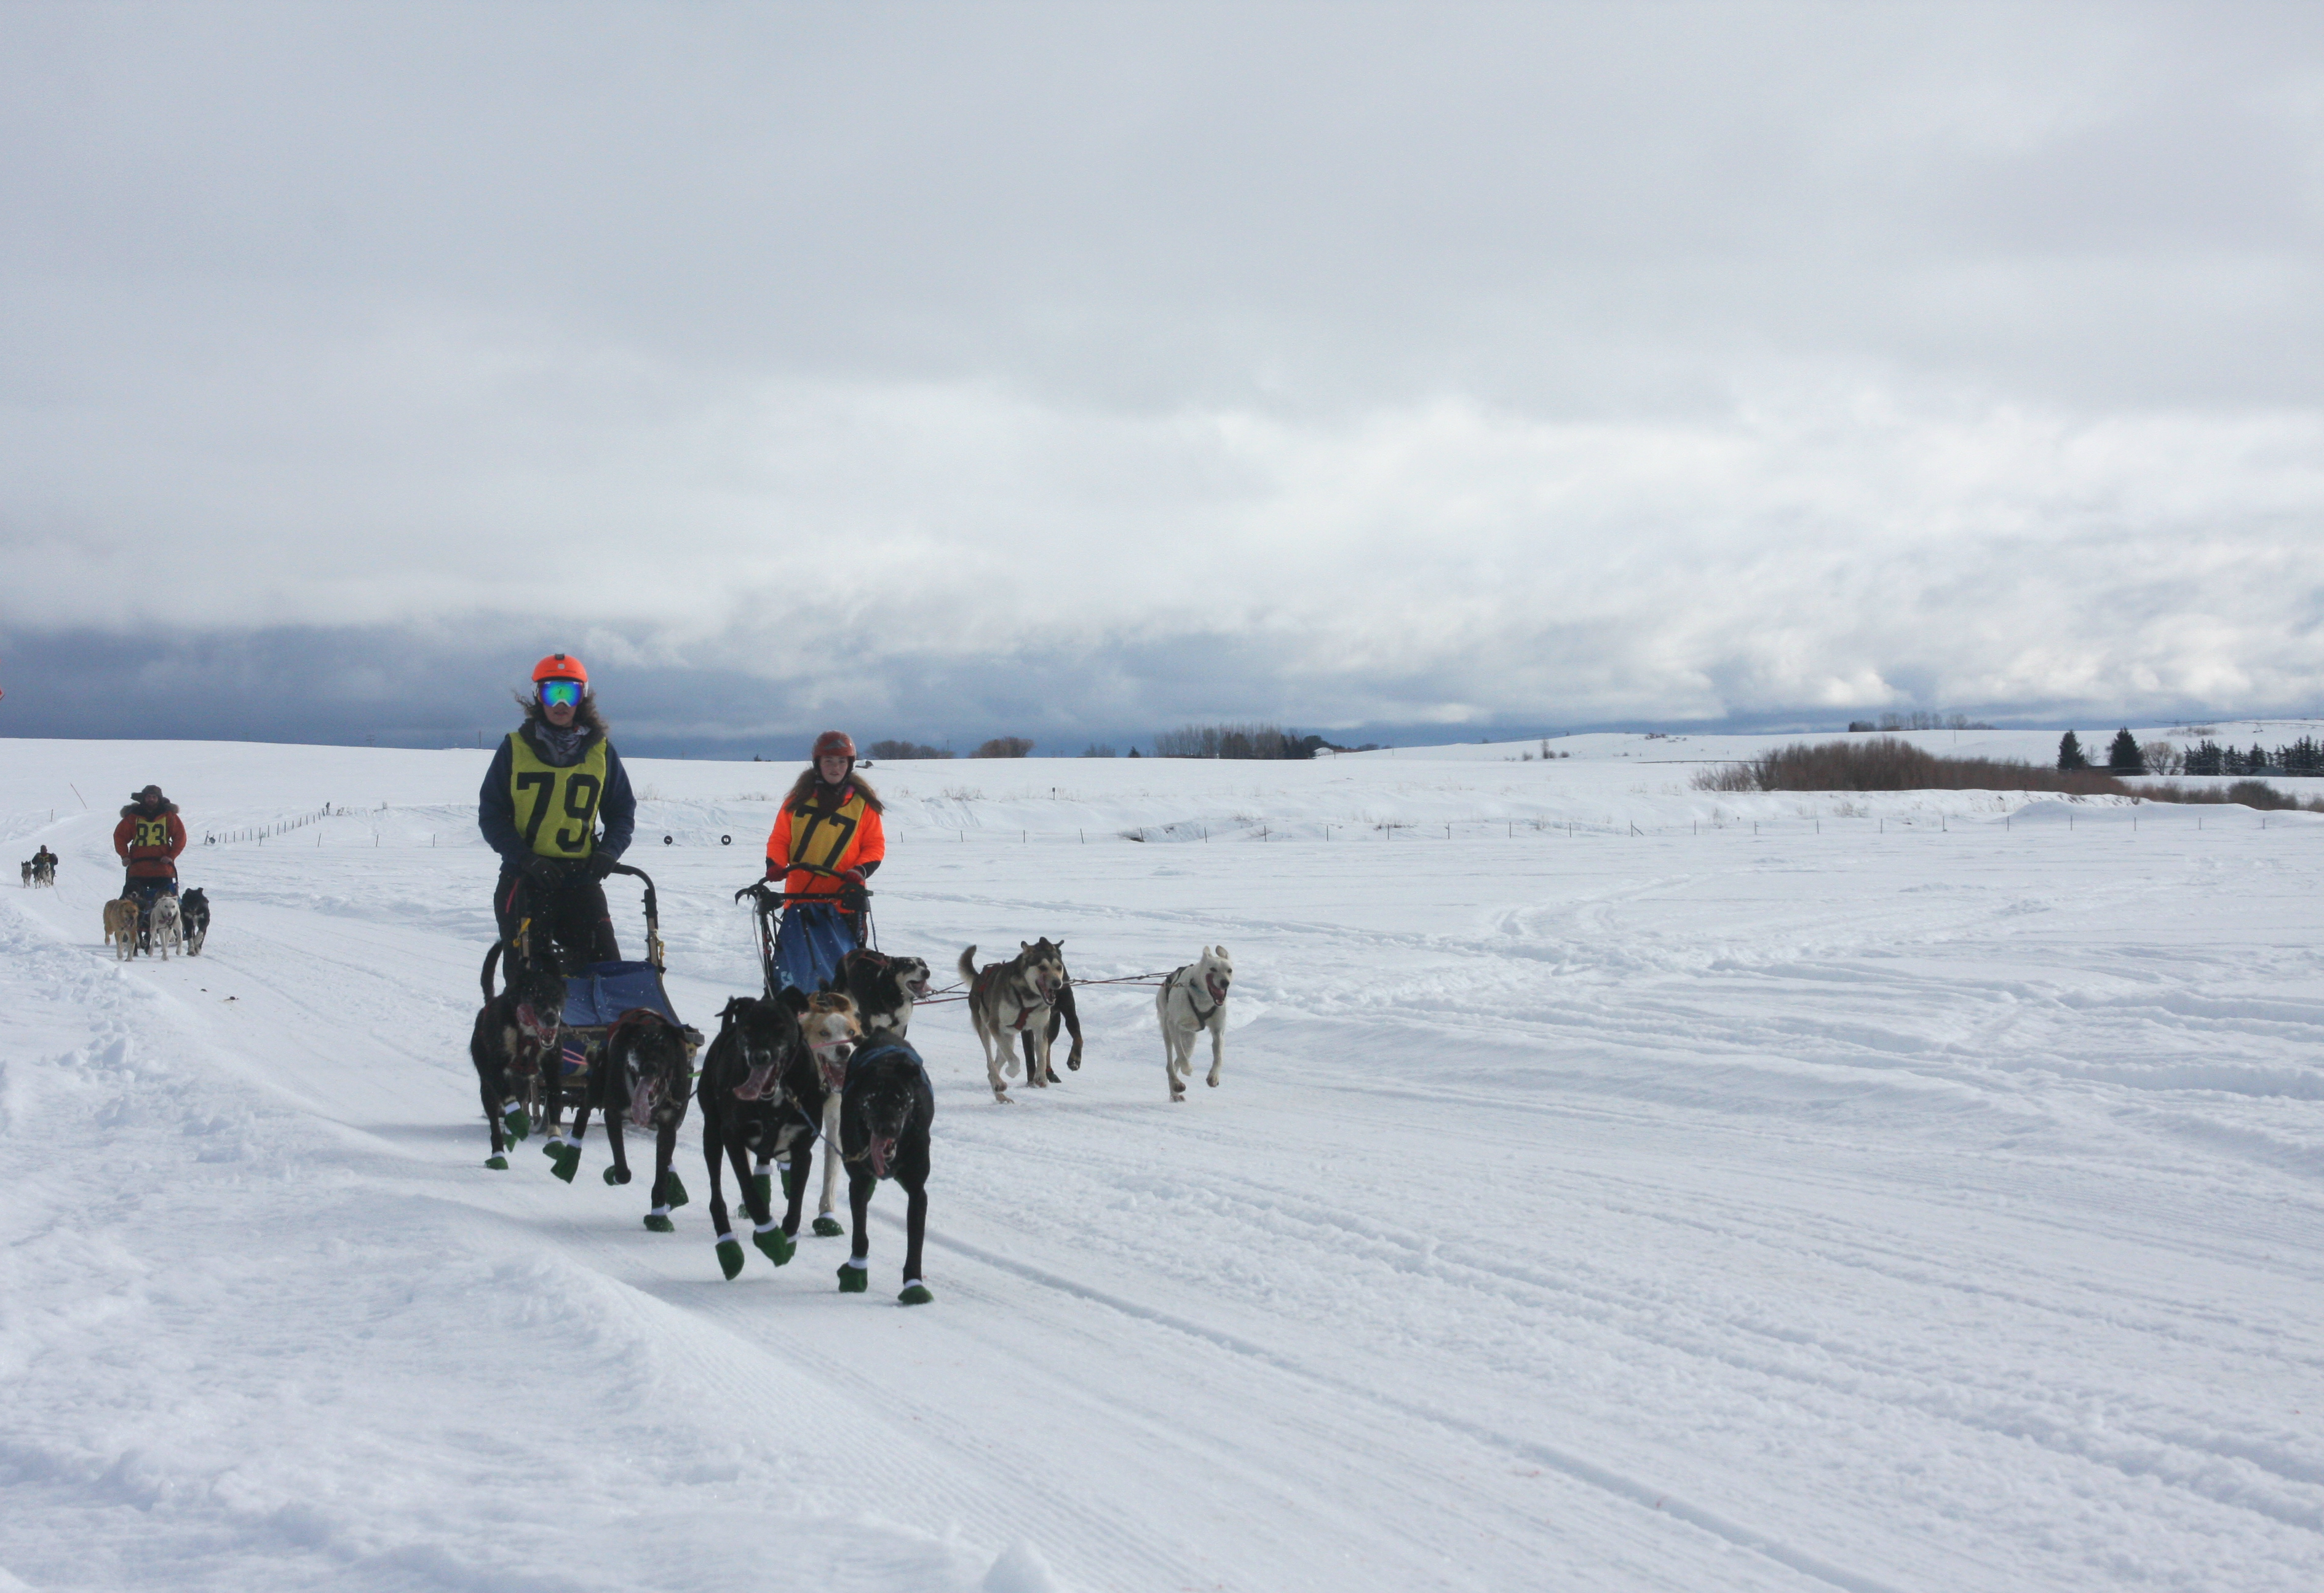 A Dog Sled Teams Heads Out On The American Dog Derby Course